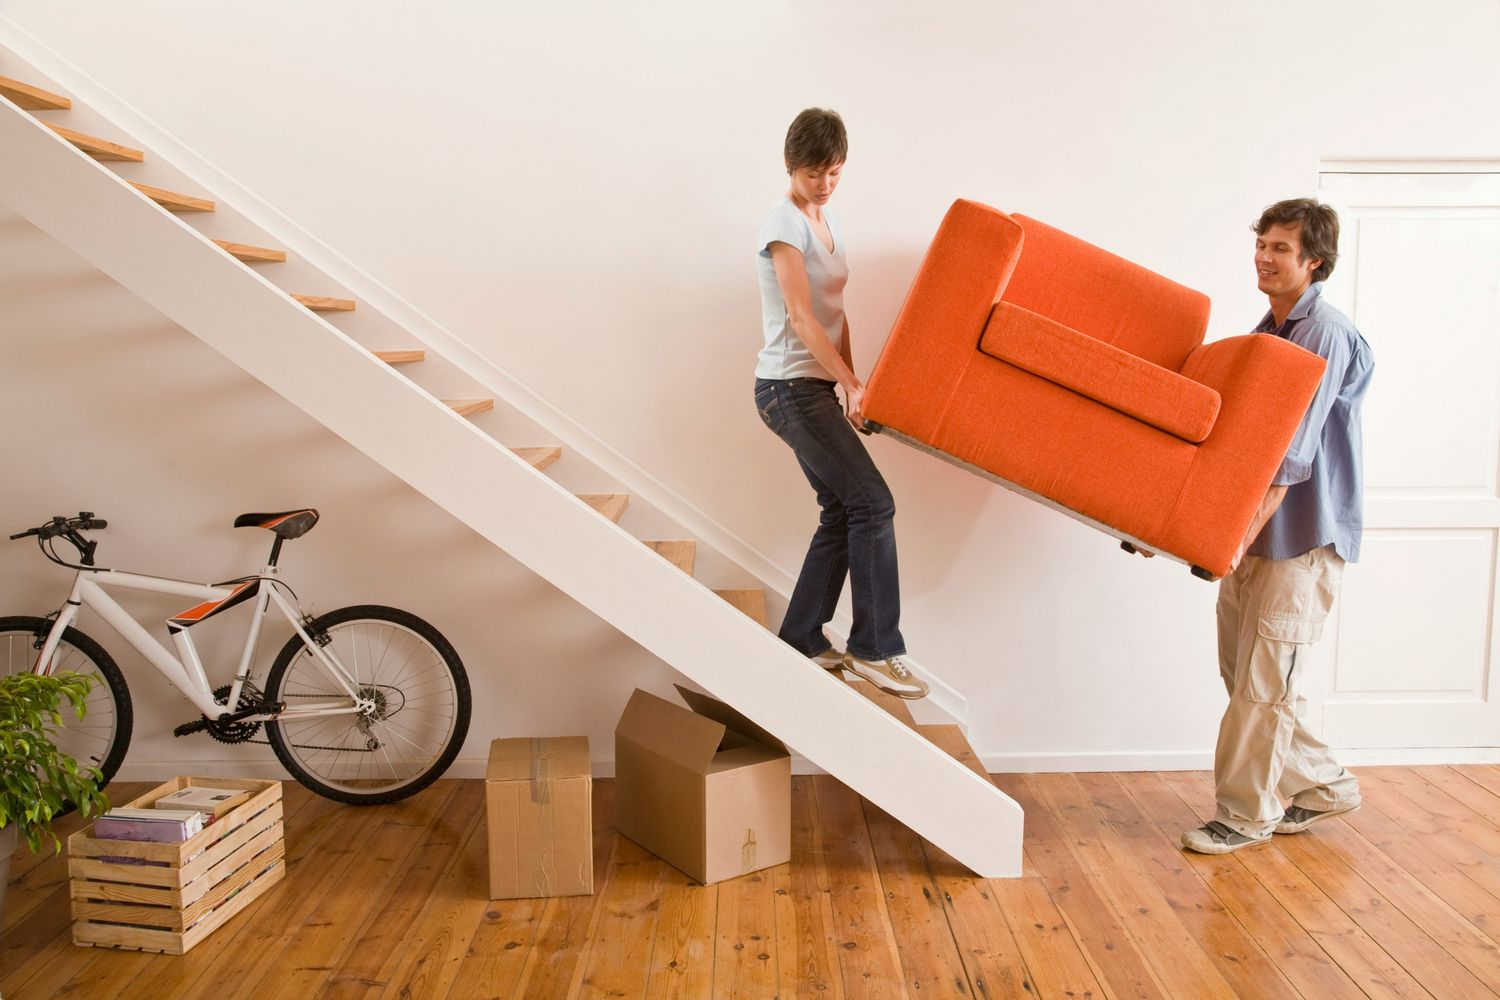 Advantages of using transportation services when moving